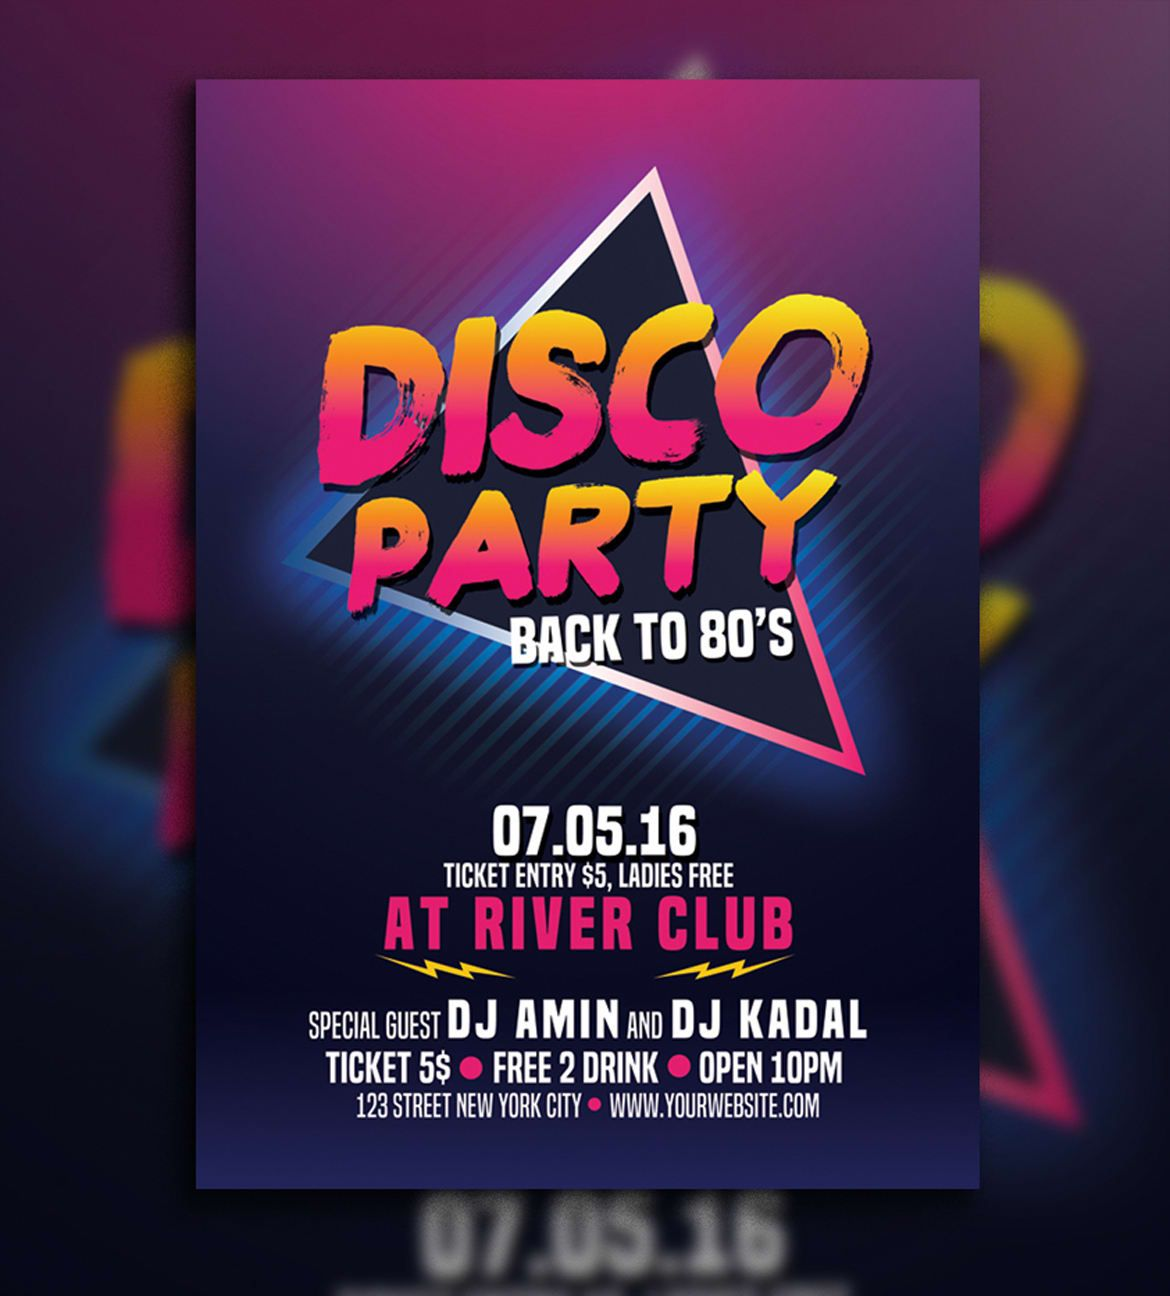 Disco Party 80's Flyer Template PSD | Flyers | Disco party